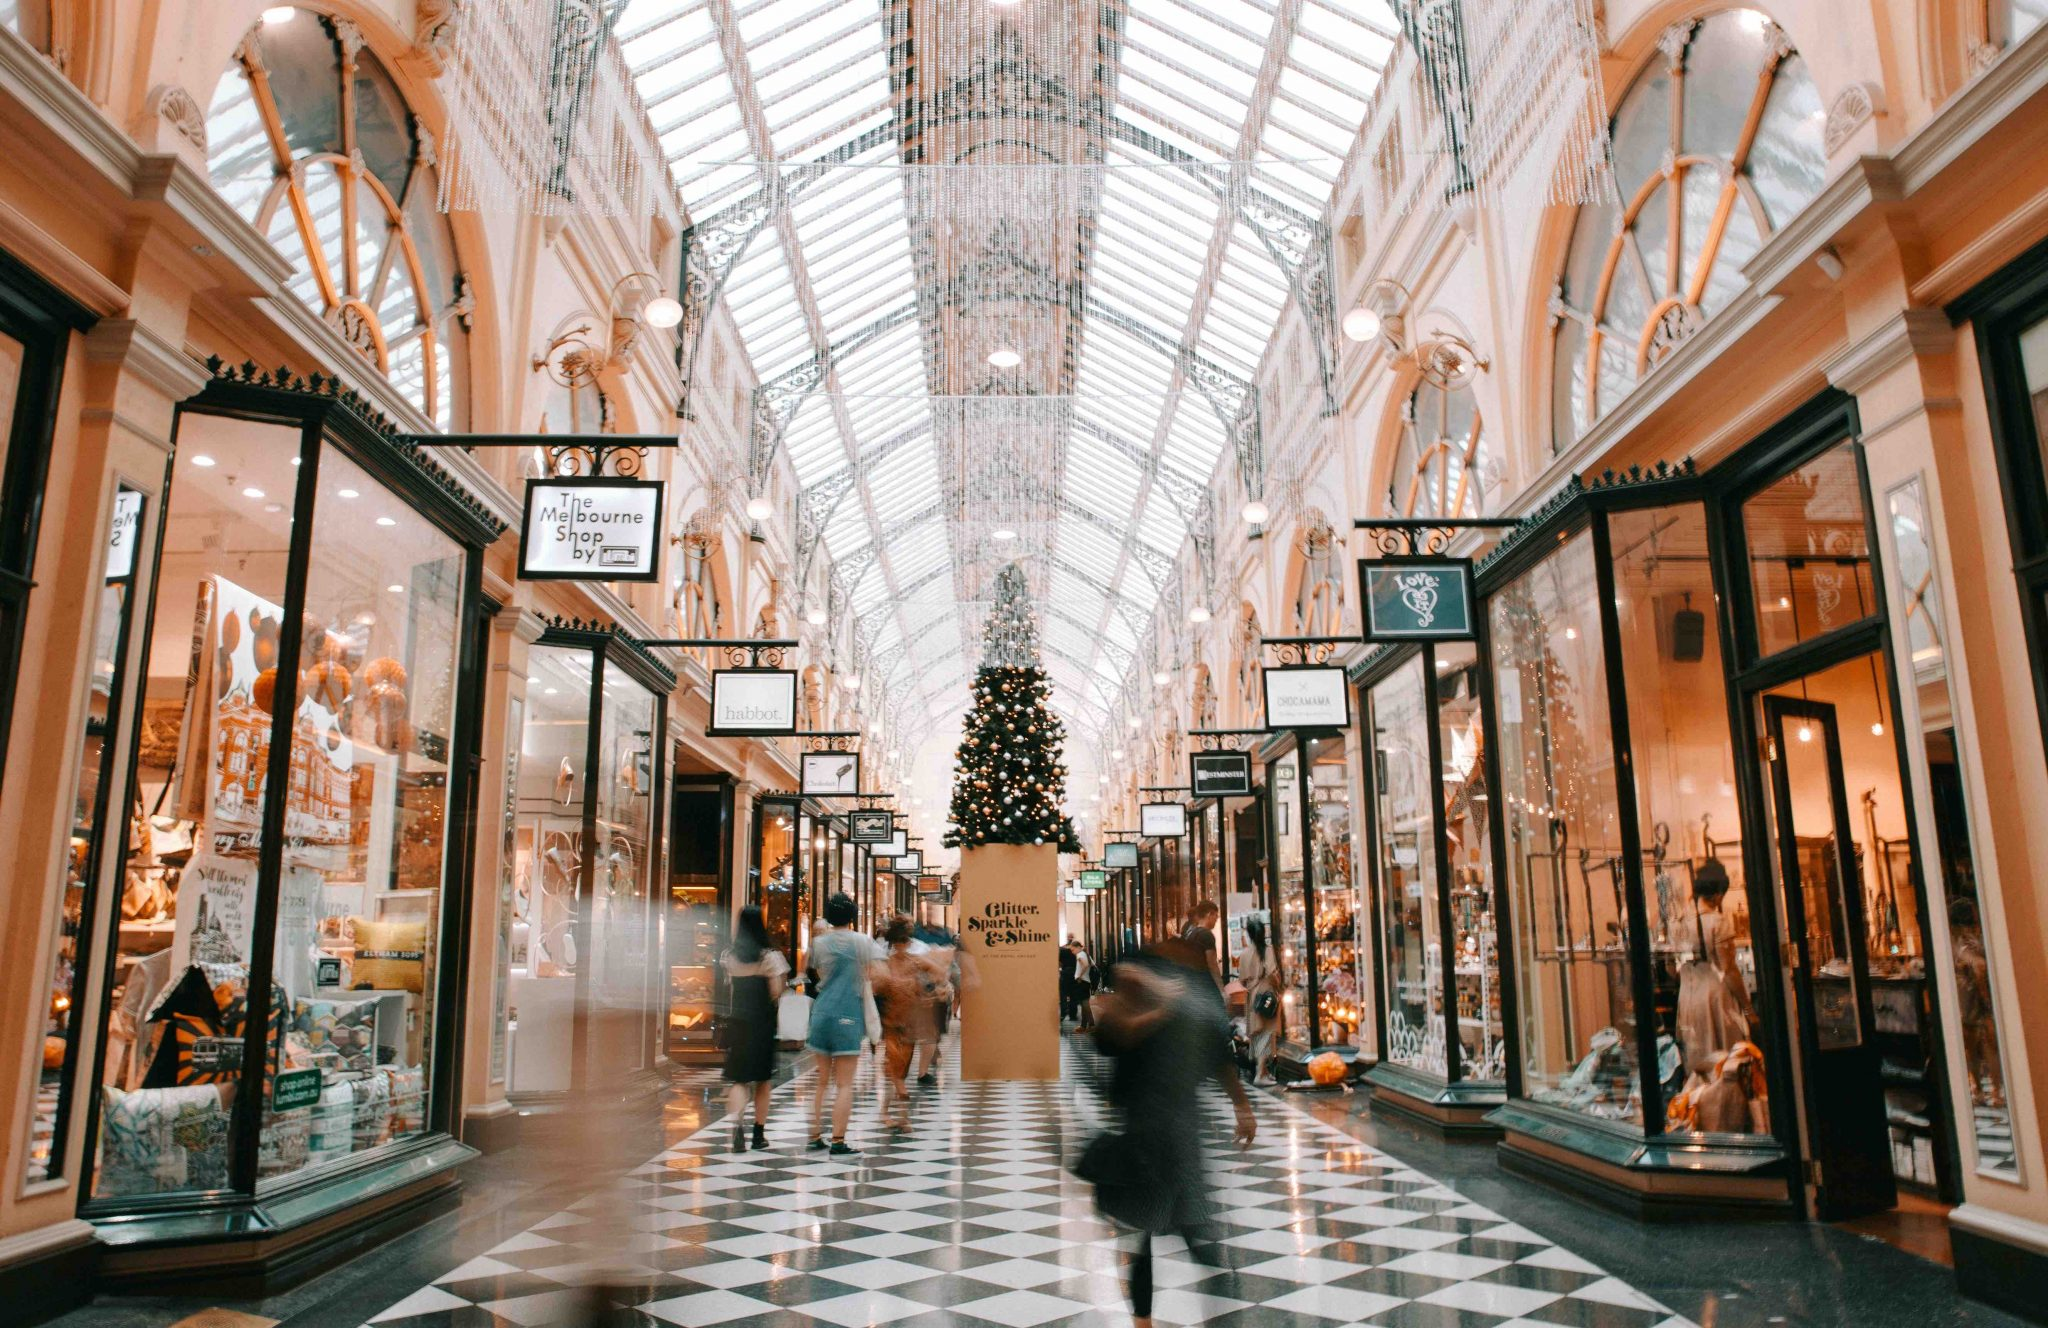 Save Money Shopping - 7 Easy Ways To Maximize Money This Christmas